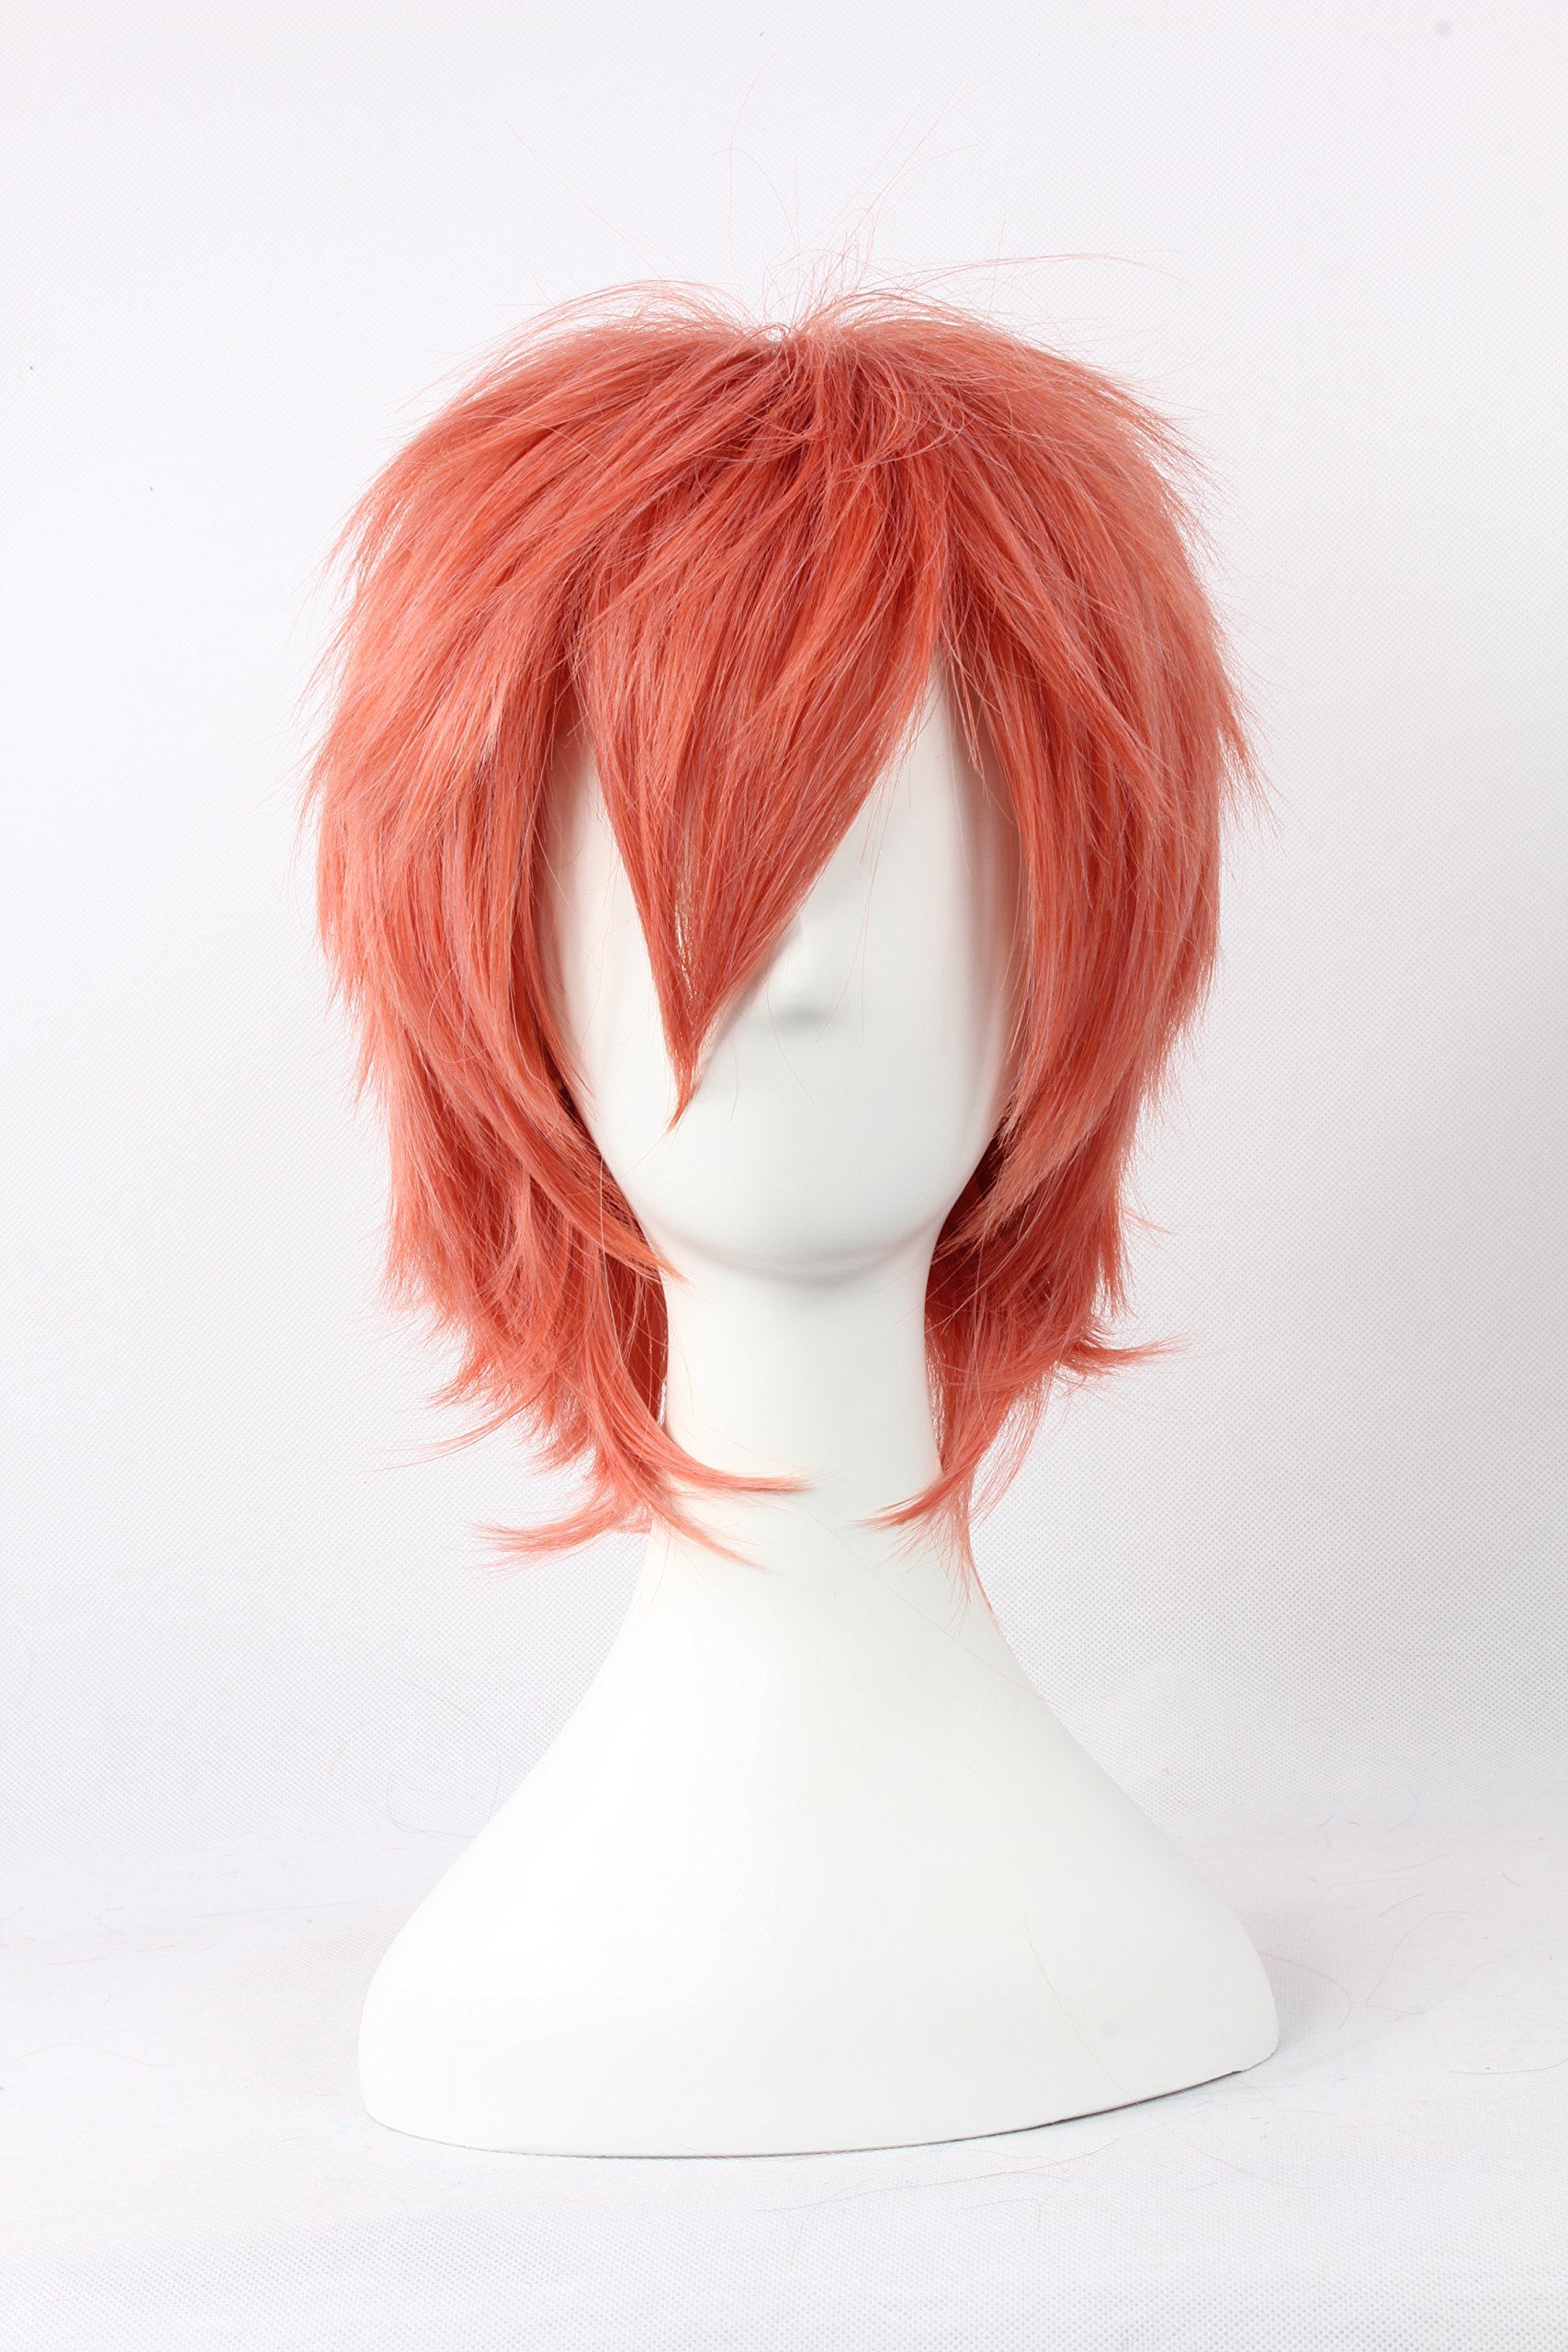 Coolsky Wigs Ao no Exorcist,Hostclub STAFF Mix Pink Short Straight Hair Cosplay Wig